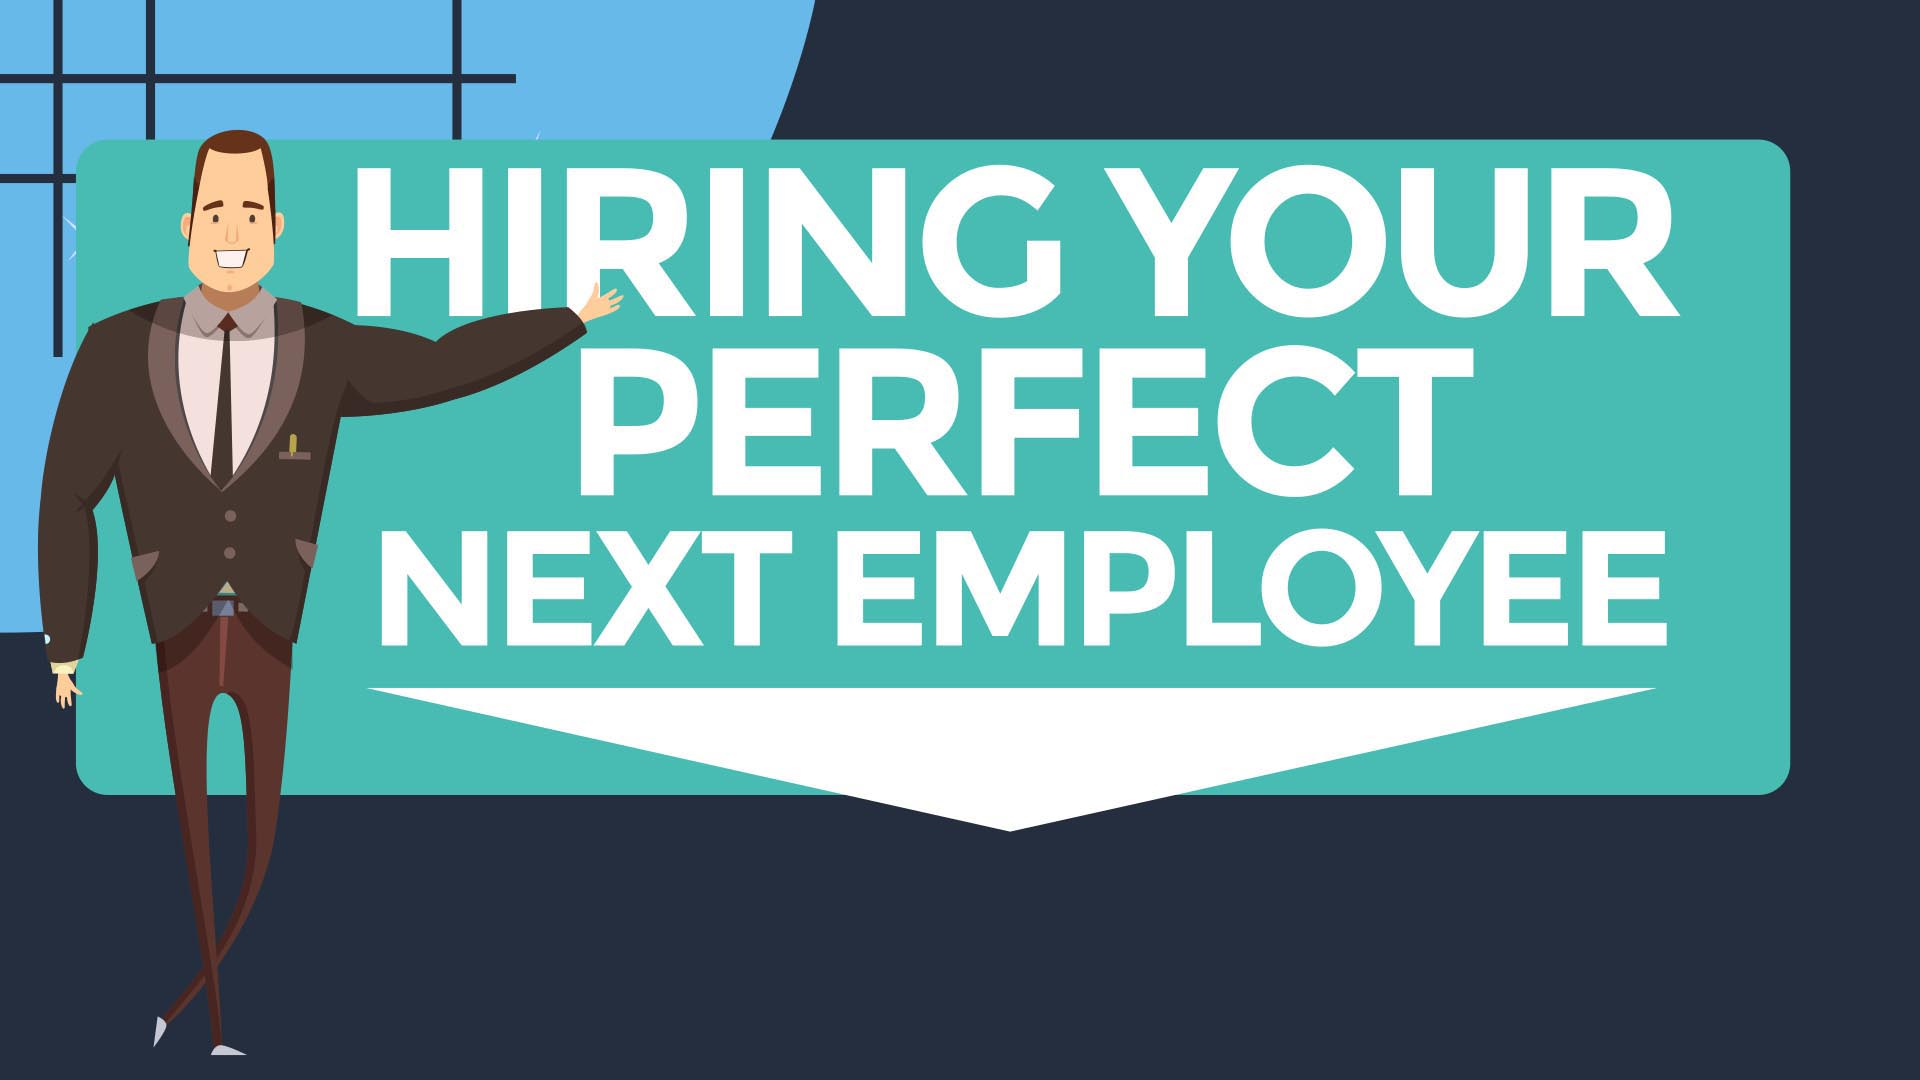 Hiring your perfect next employee